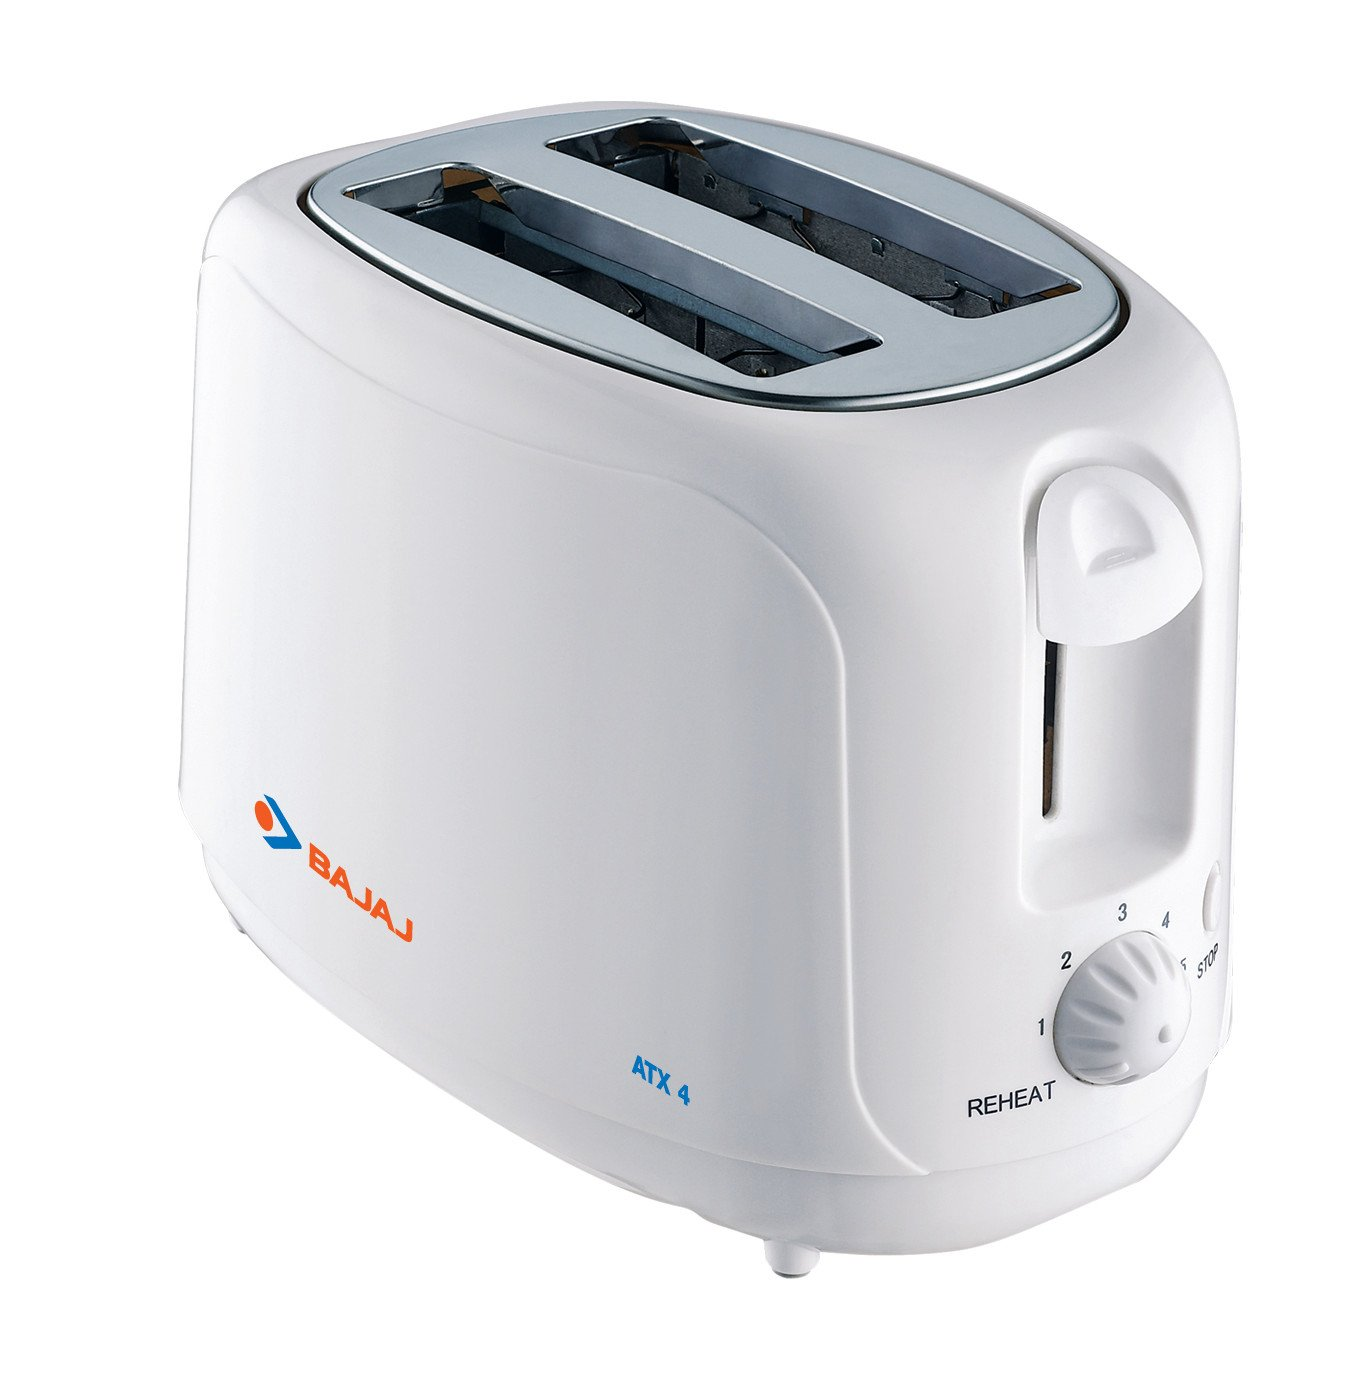 Upto 50% Off On Kitchen Products By Amazon | Bajaj ATX 4 750-Watt Pop-up Toaster @ Rs.1,149